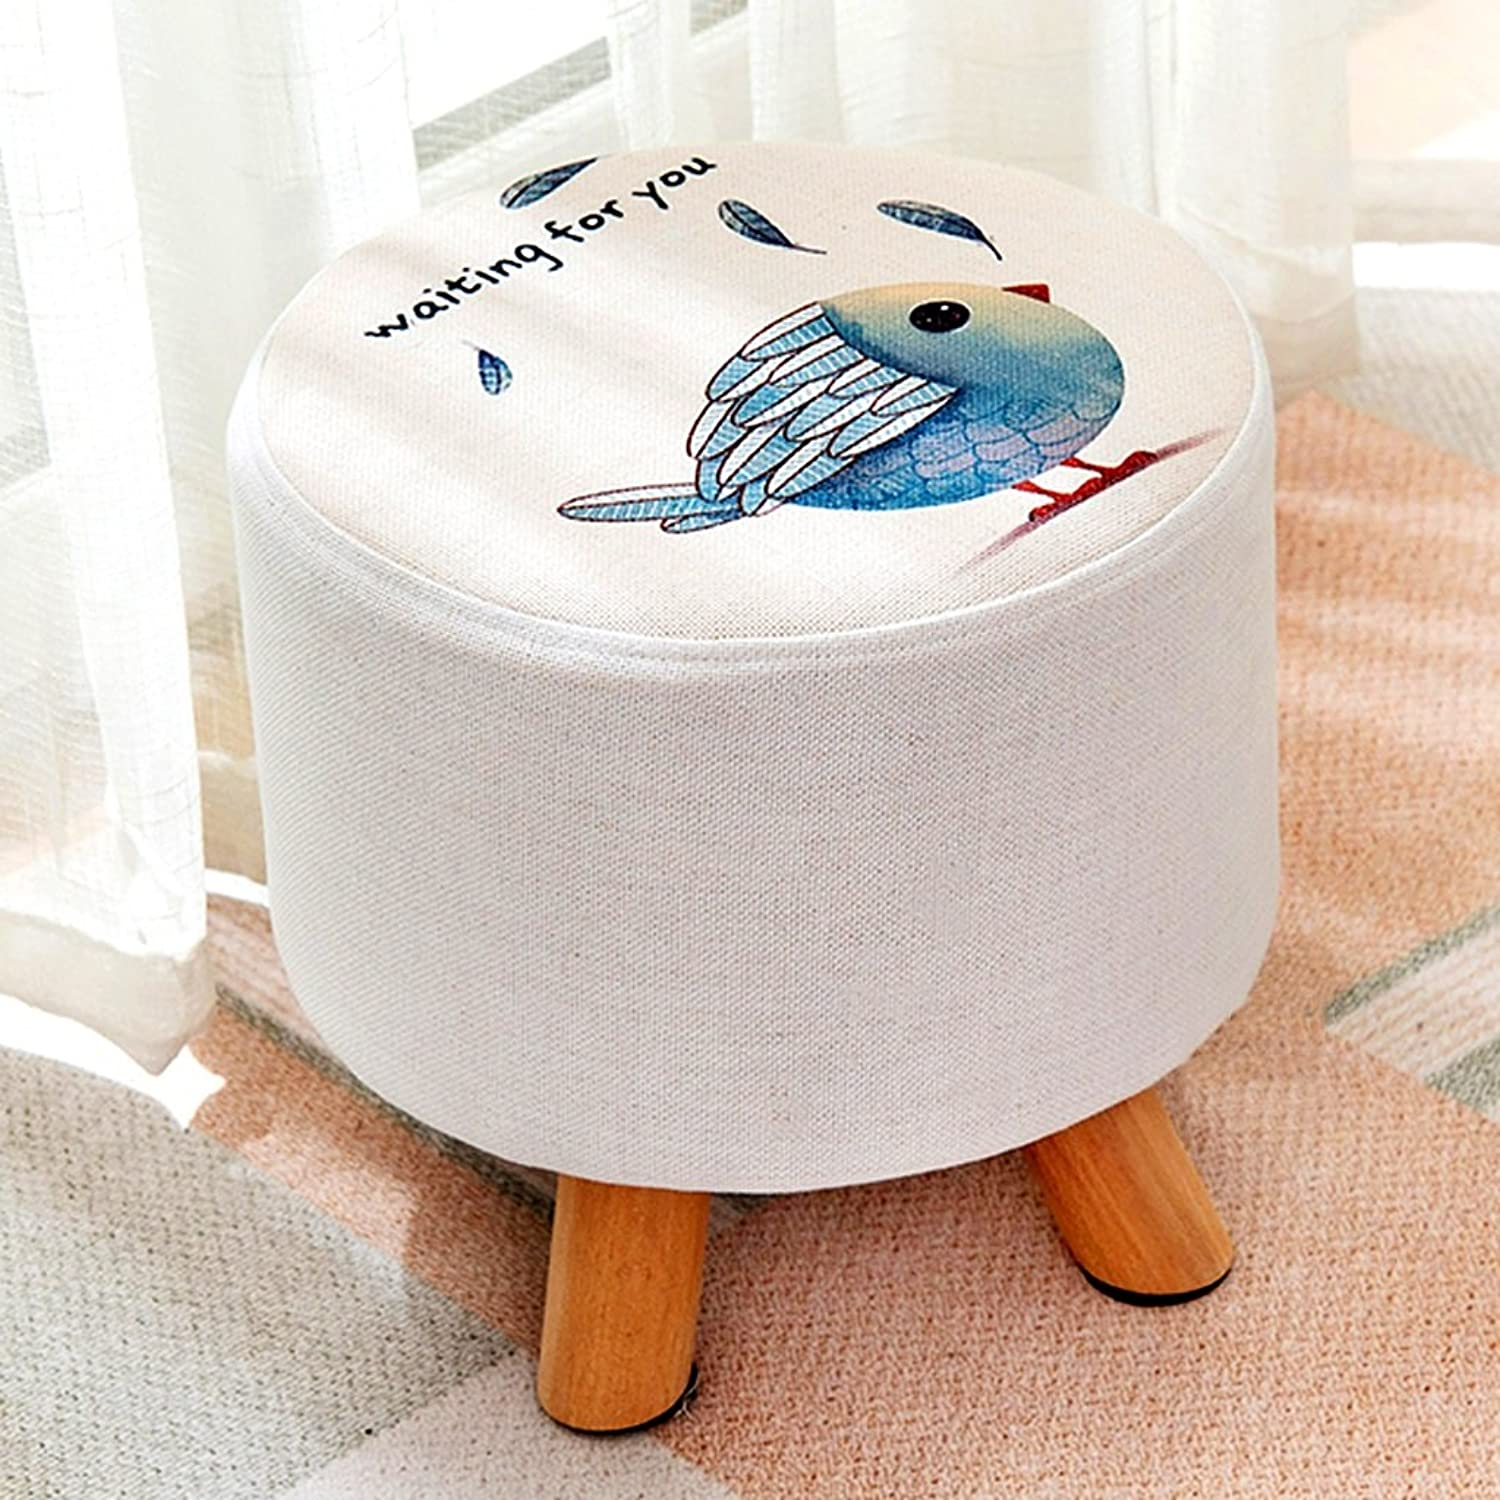 Footstools Wooden Bench Round upholstered Footstool Living Room Fabric Stool Sofa Small Round Stool Home Entrance shoes Bench Fashion Small Bench Simple Fashion Stool